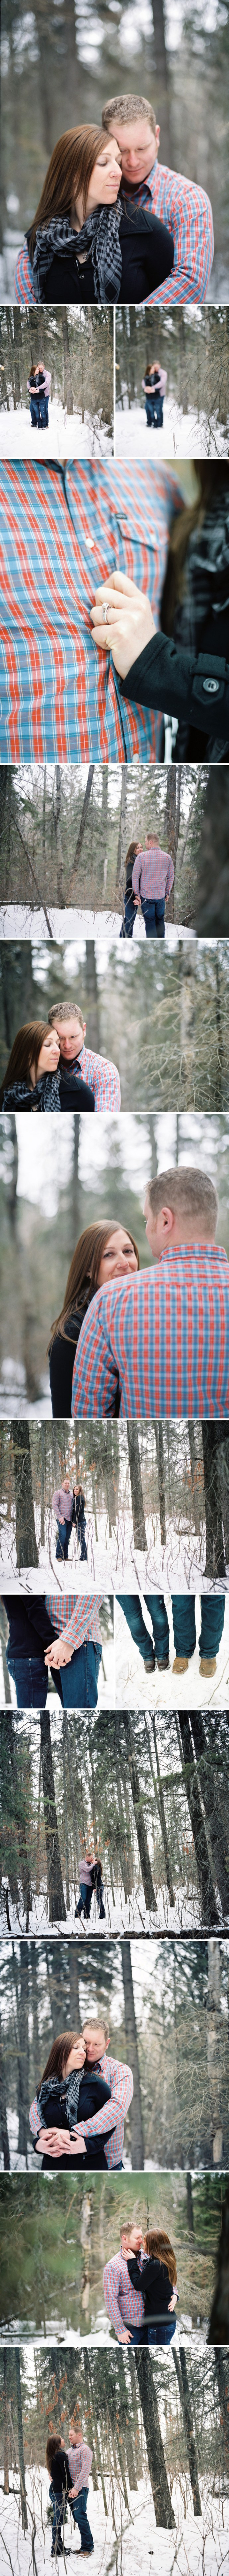 engagement photography ➾ ©The Paper Deer Photography | paperdeerphoto.com